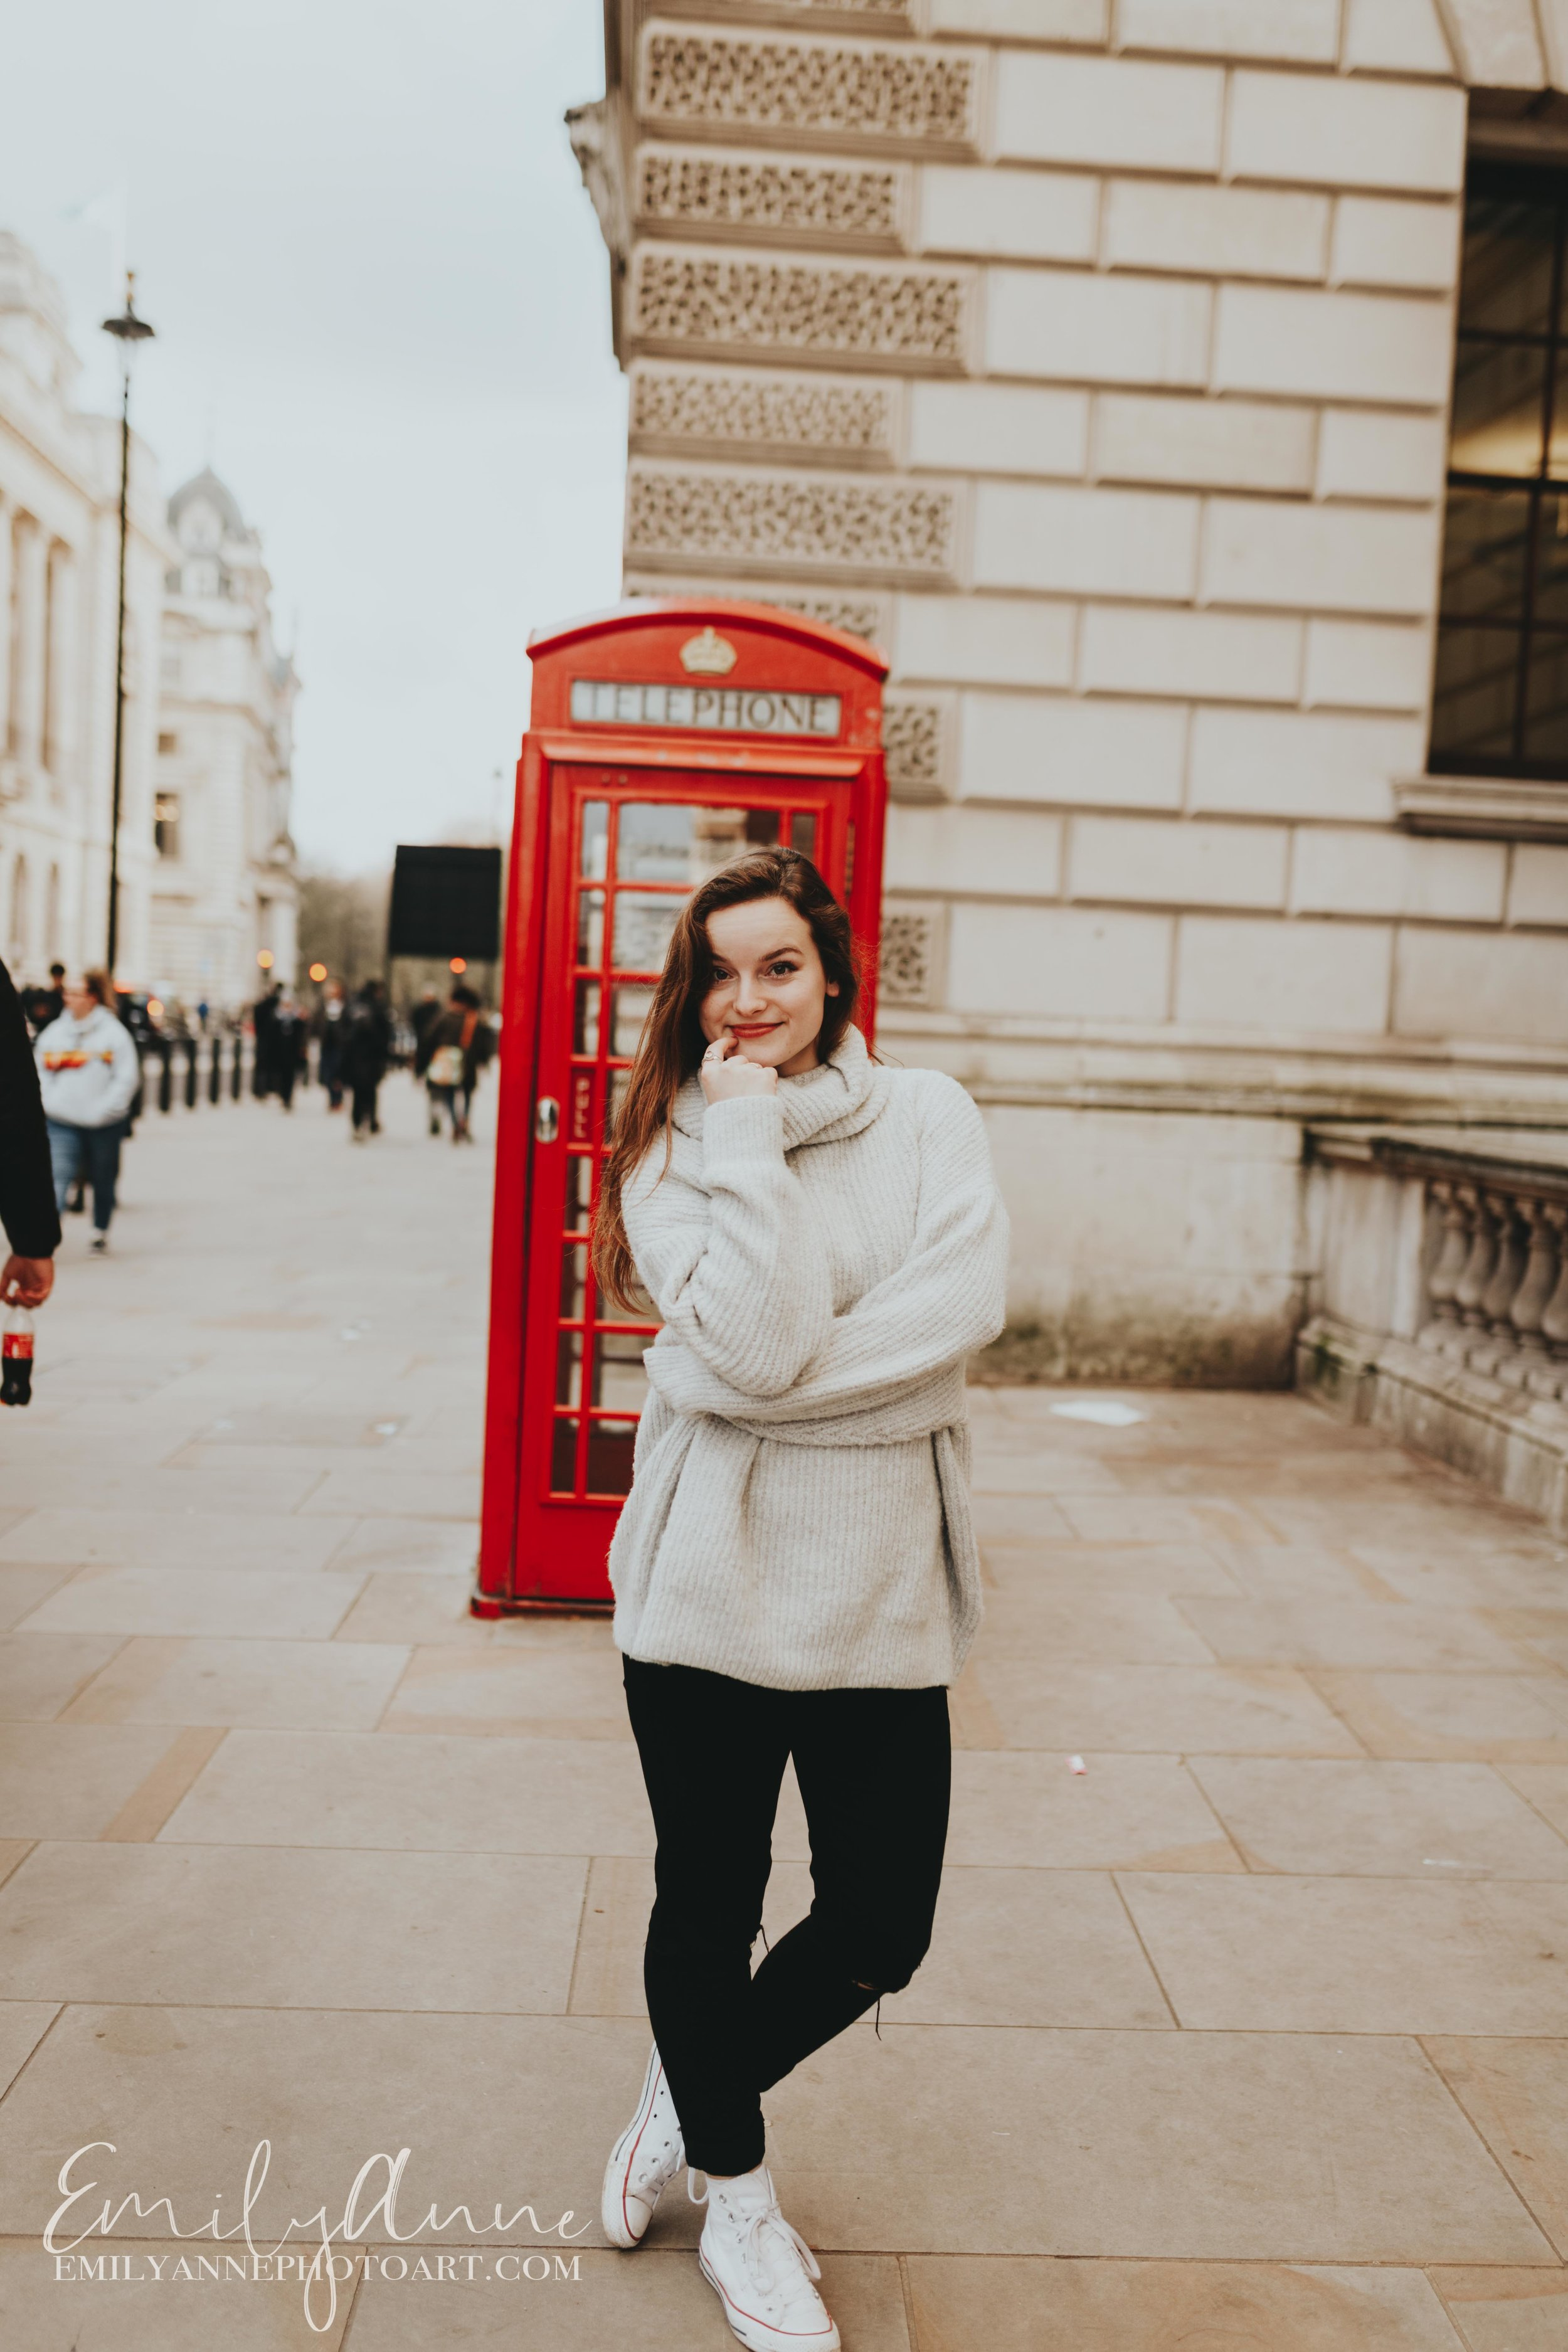 fun UK telephone booth images portrait inspiration by best wedding/portrait photographer emily Anne photography Nashville US and London Barcelona